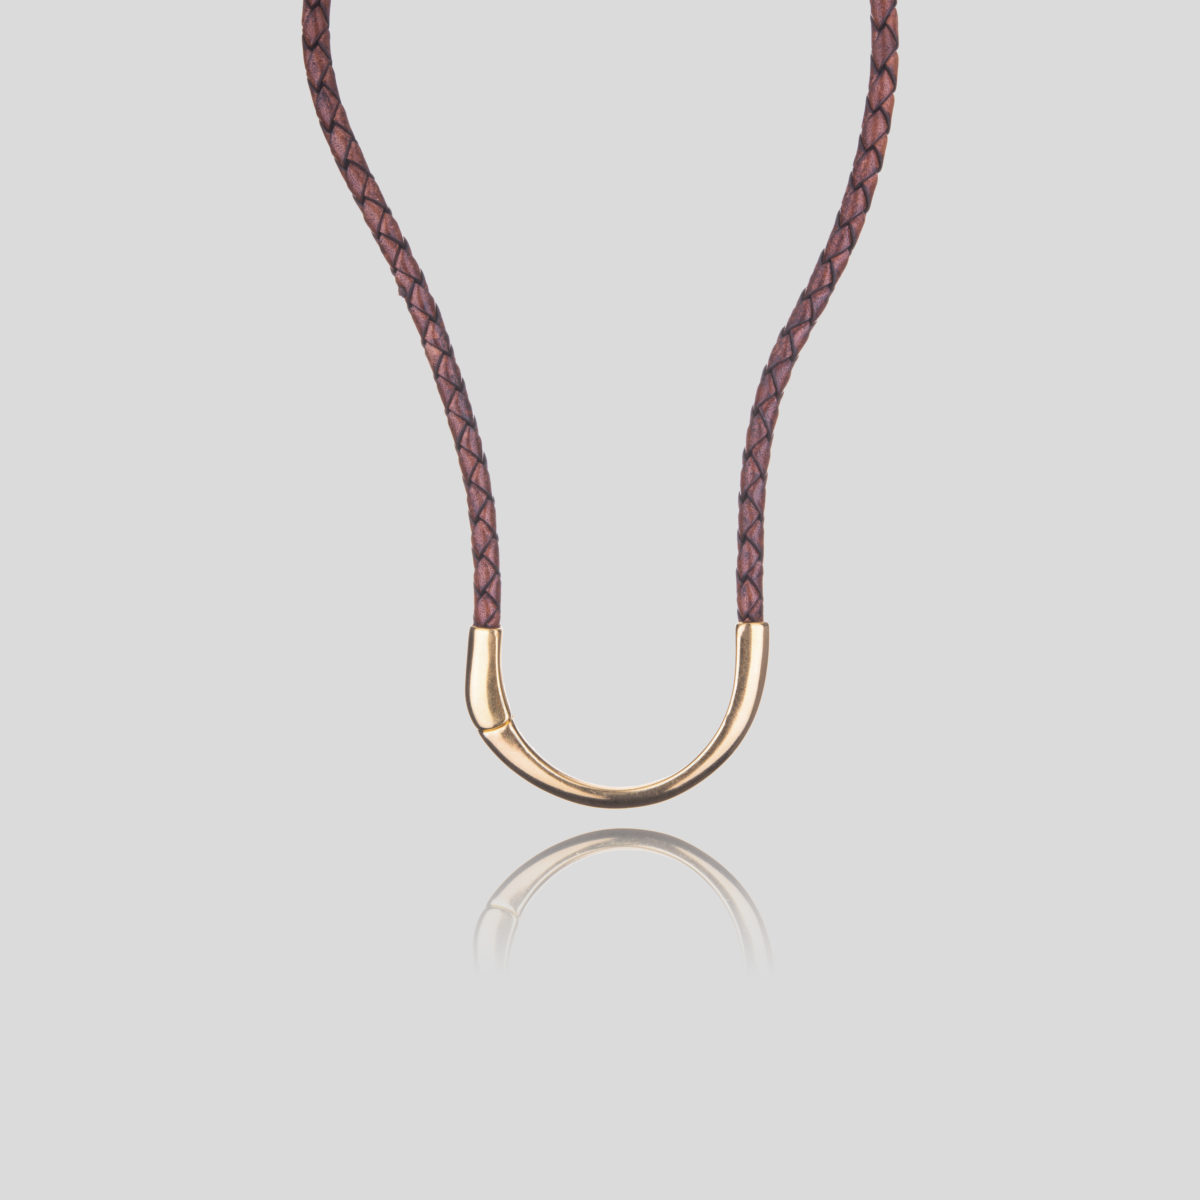 Rande short necklace with brown braided leather and front magnetic closure forming a golden semicircle